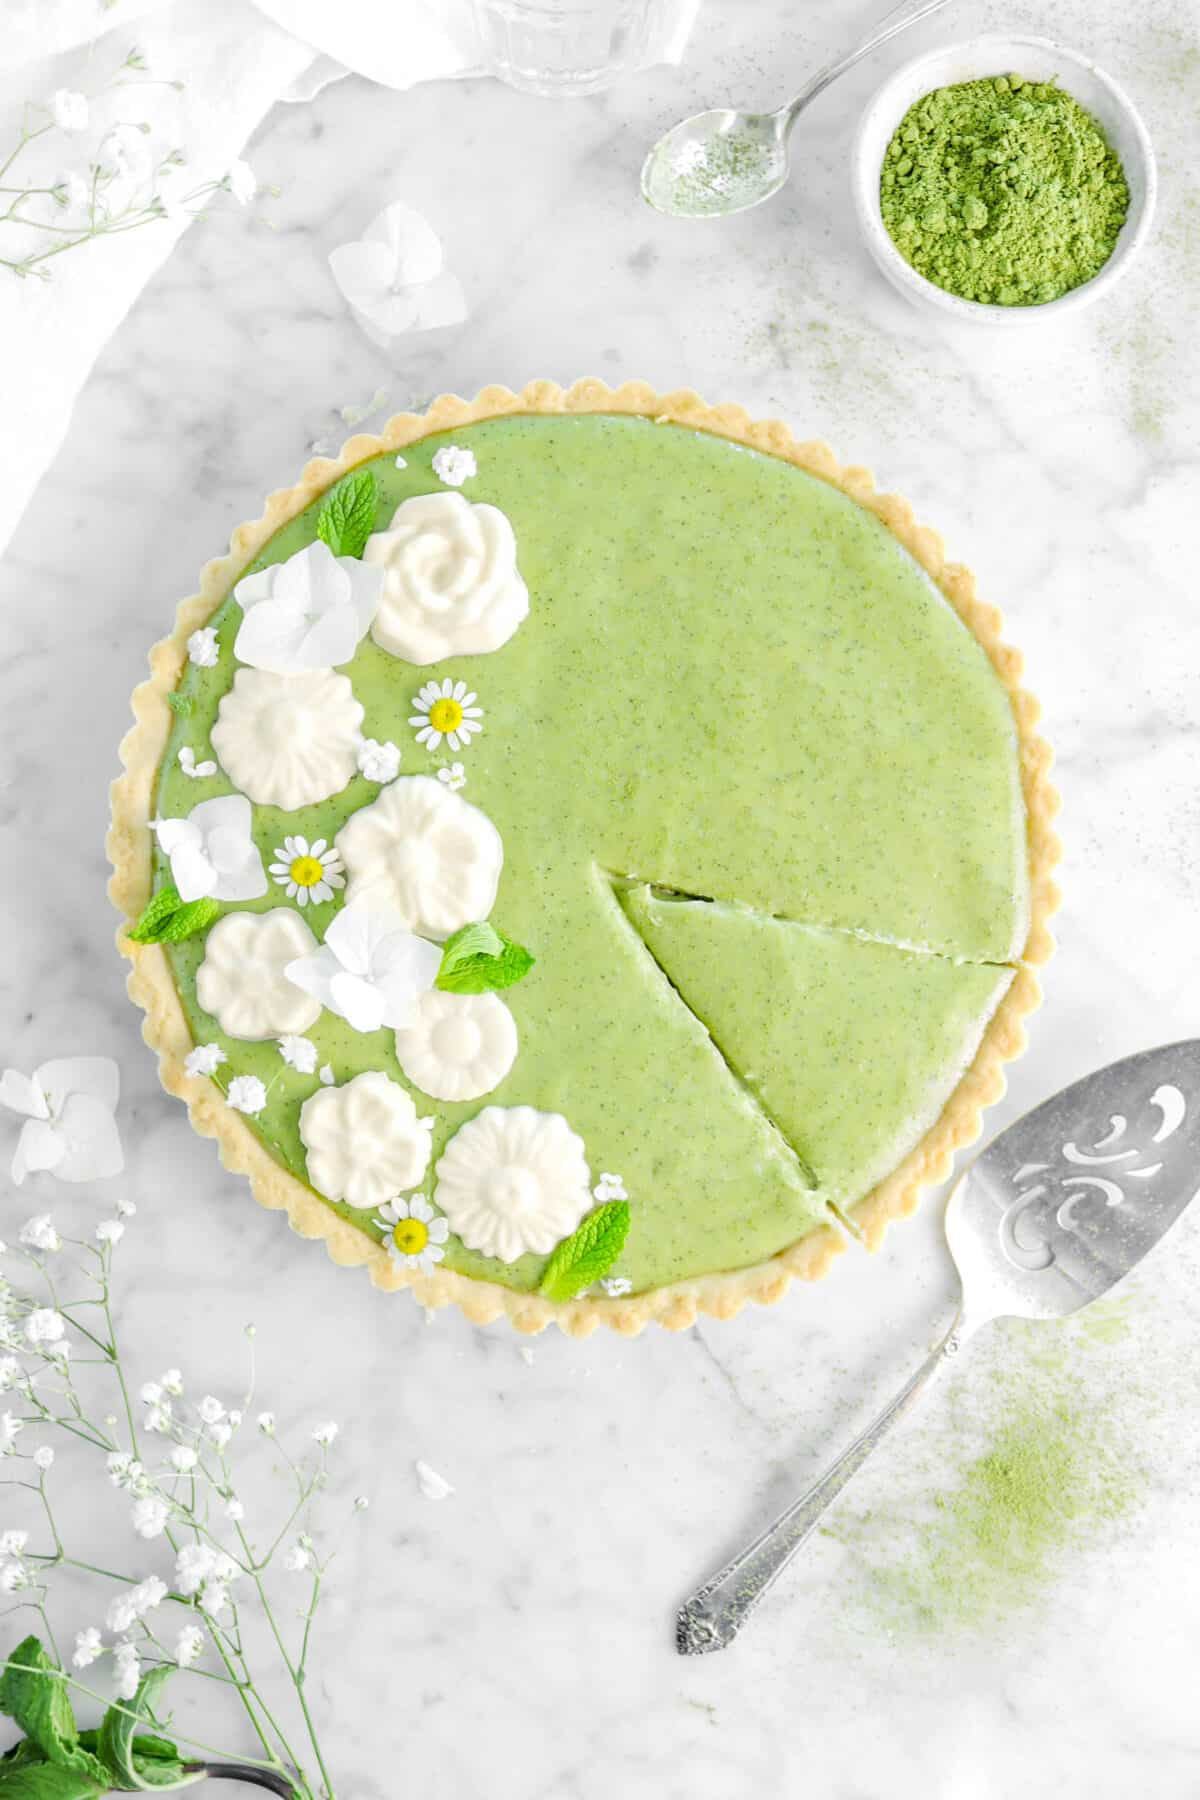 overhead shot of matcha tart with slice cut into it with cake knife beside, matcha powder around, and fresh flowers